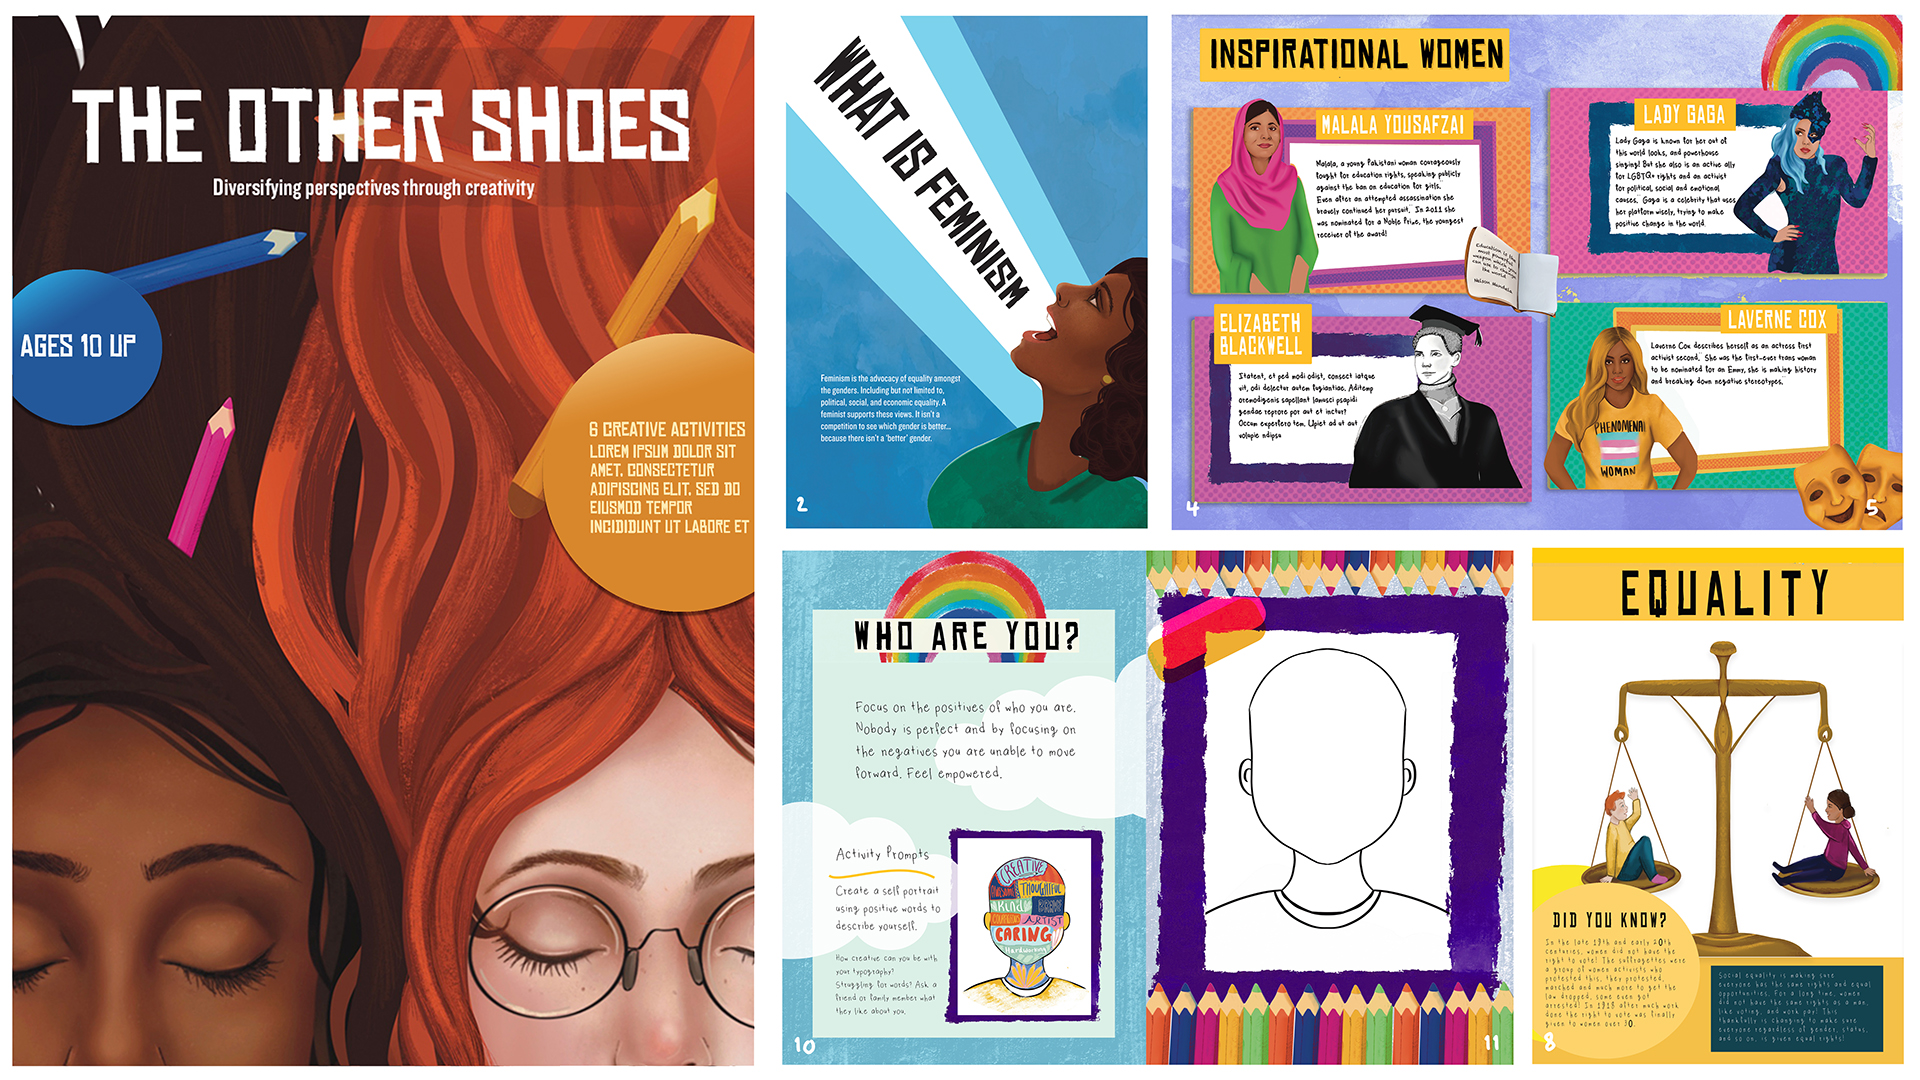 The front cover and 6 page spreads of a magazine called The Other Shoes